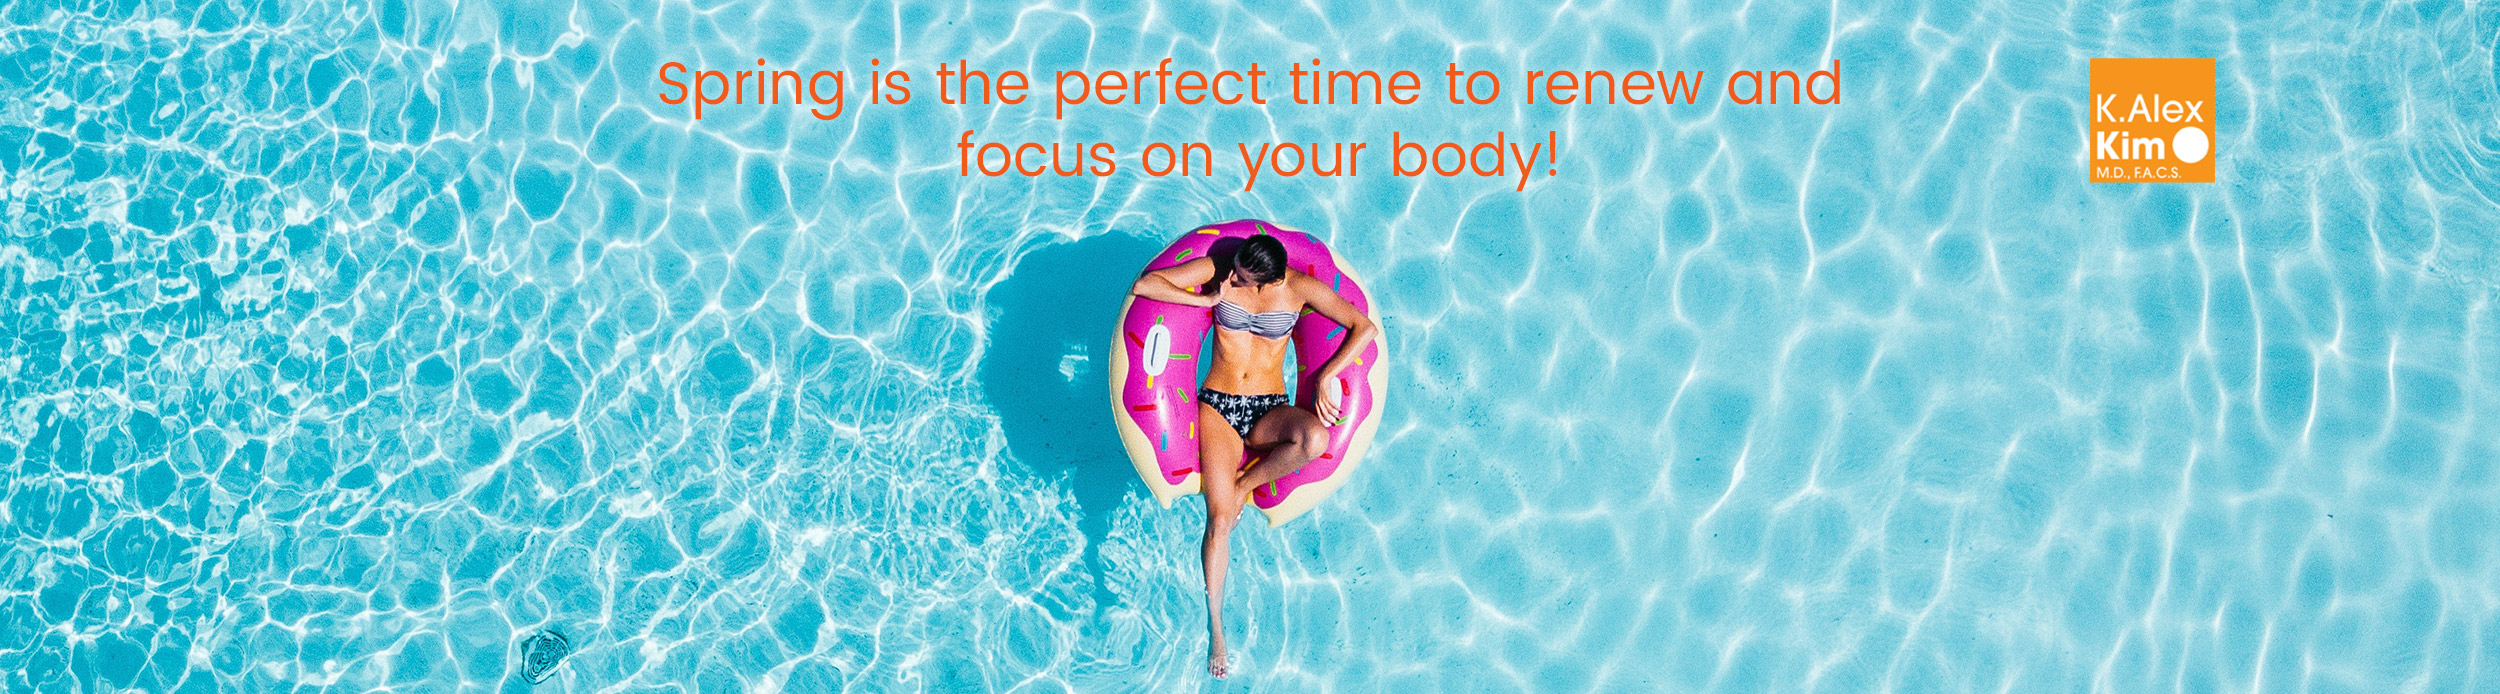 Spring is the perfect time to renew and focus on your body!